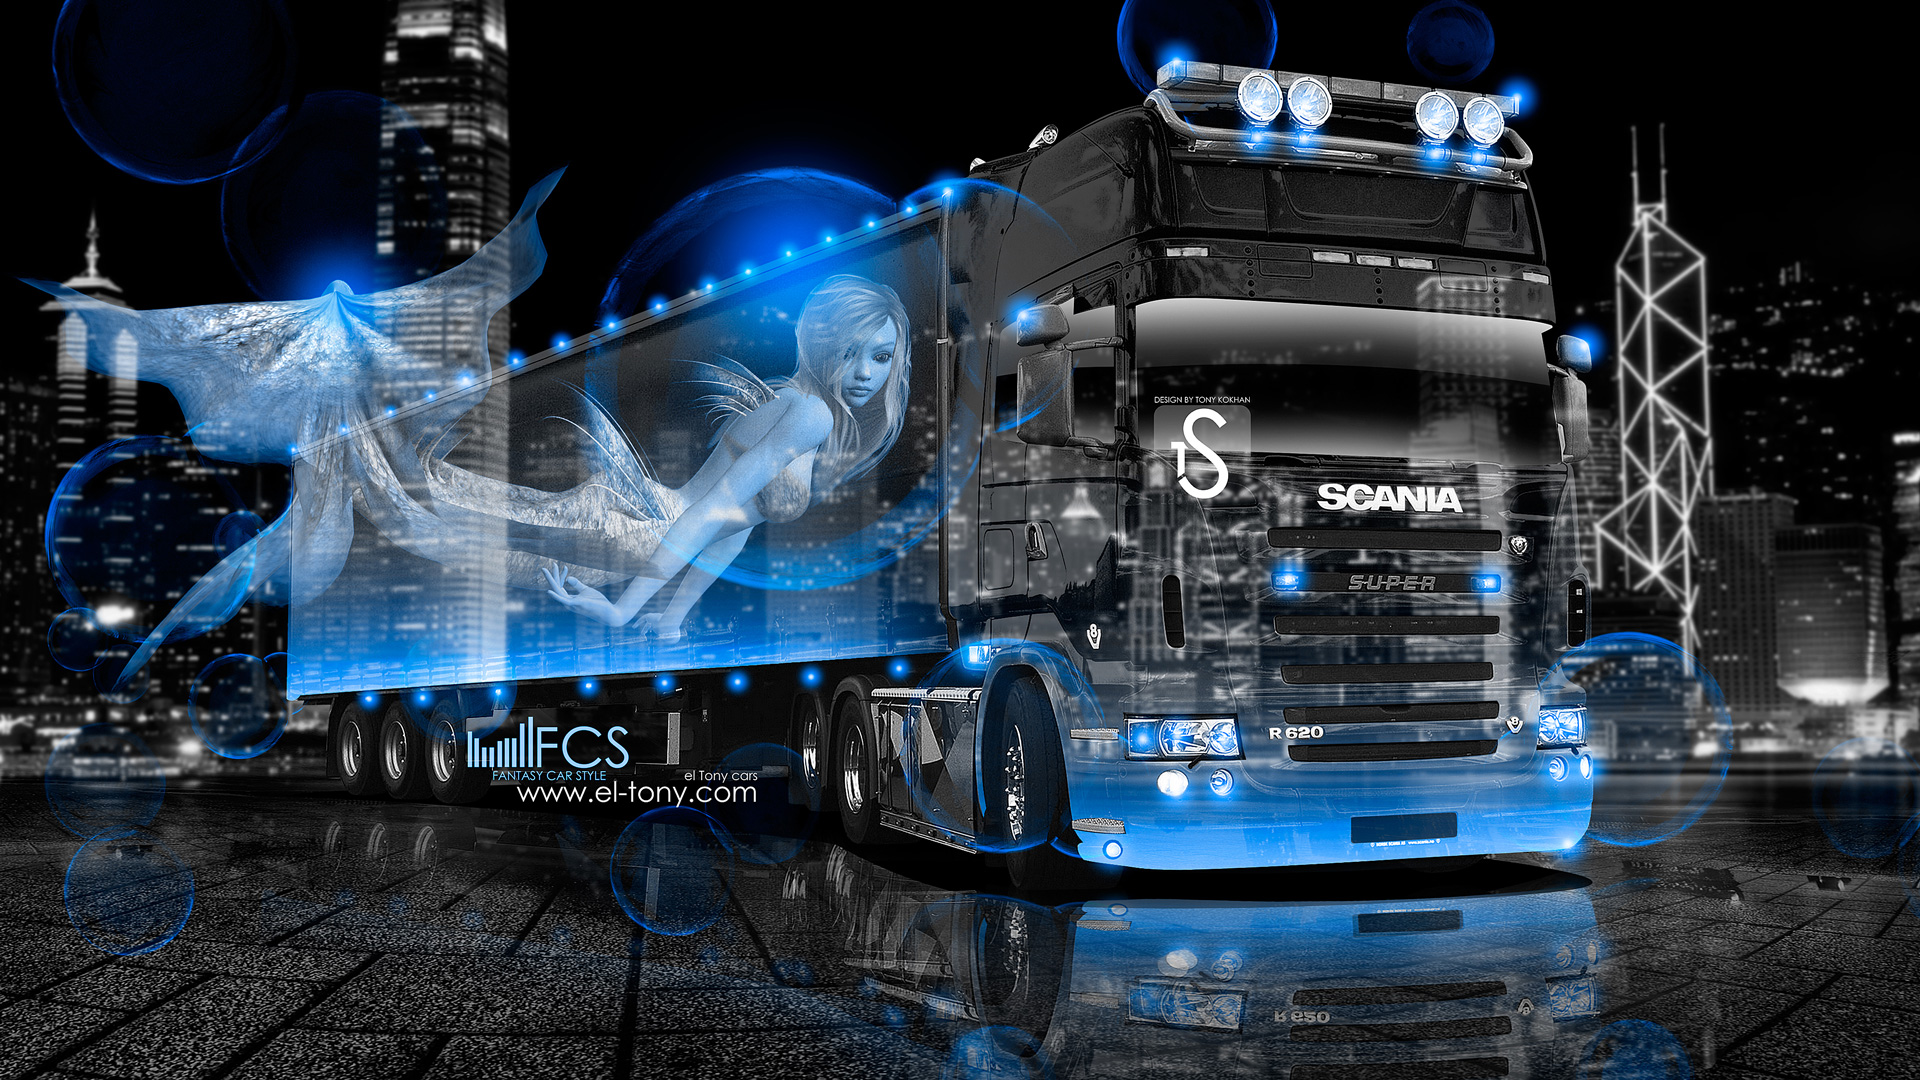 Scania-R620-Truck-Fantasy-Nixie-City-2013-Blue-Neon-by-Tony-Kokhan-[www.el-tony.com]